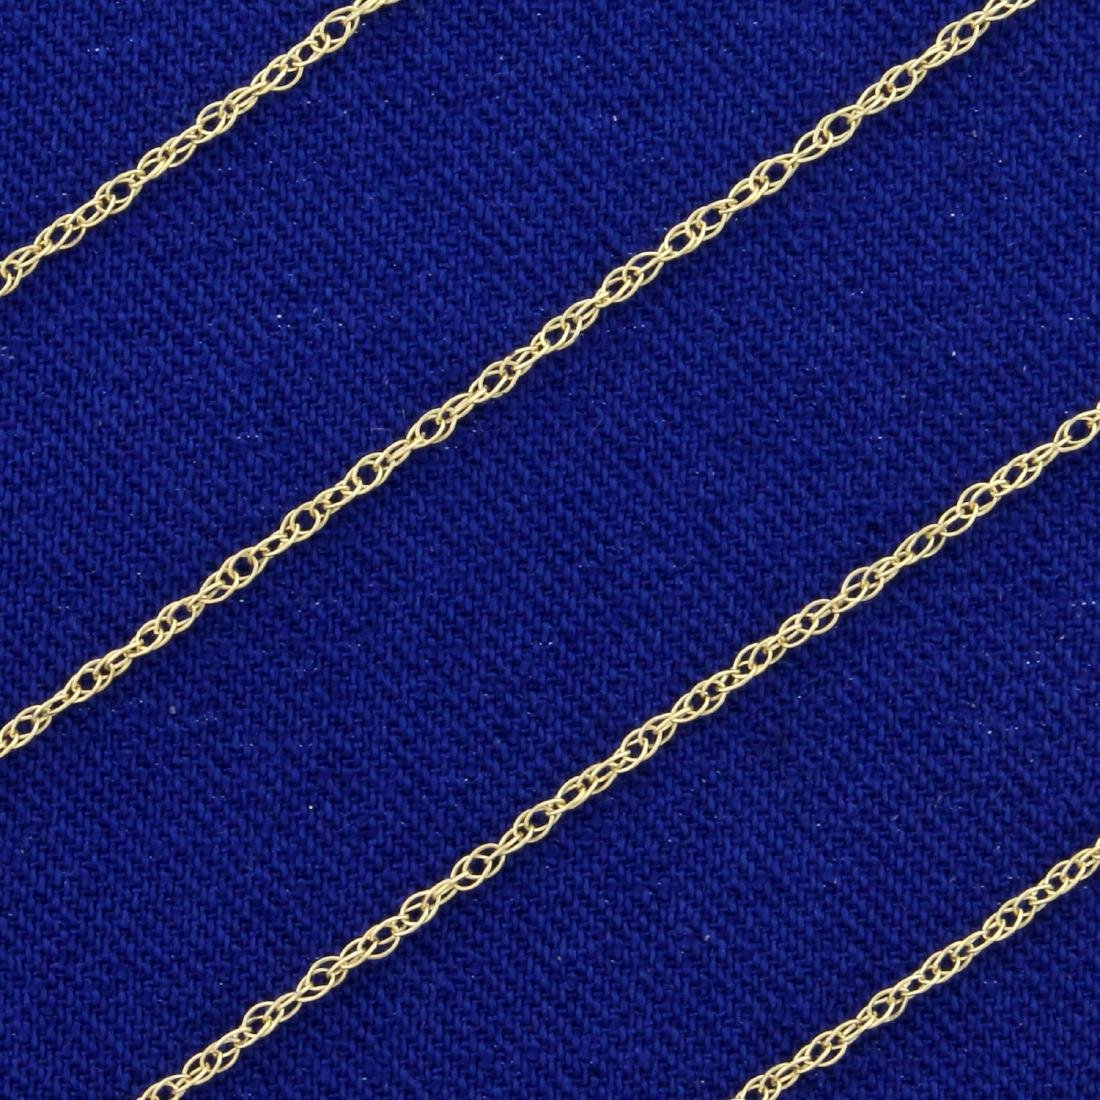 24 1/2 Inch Rope Style Neck Chain in 14K Yellow Gold - 2